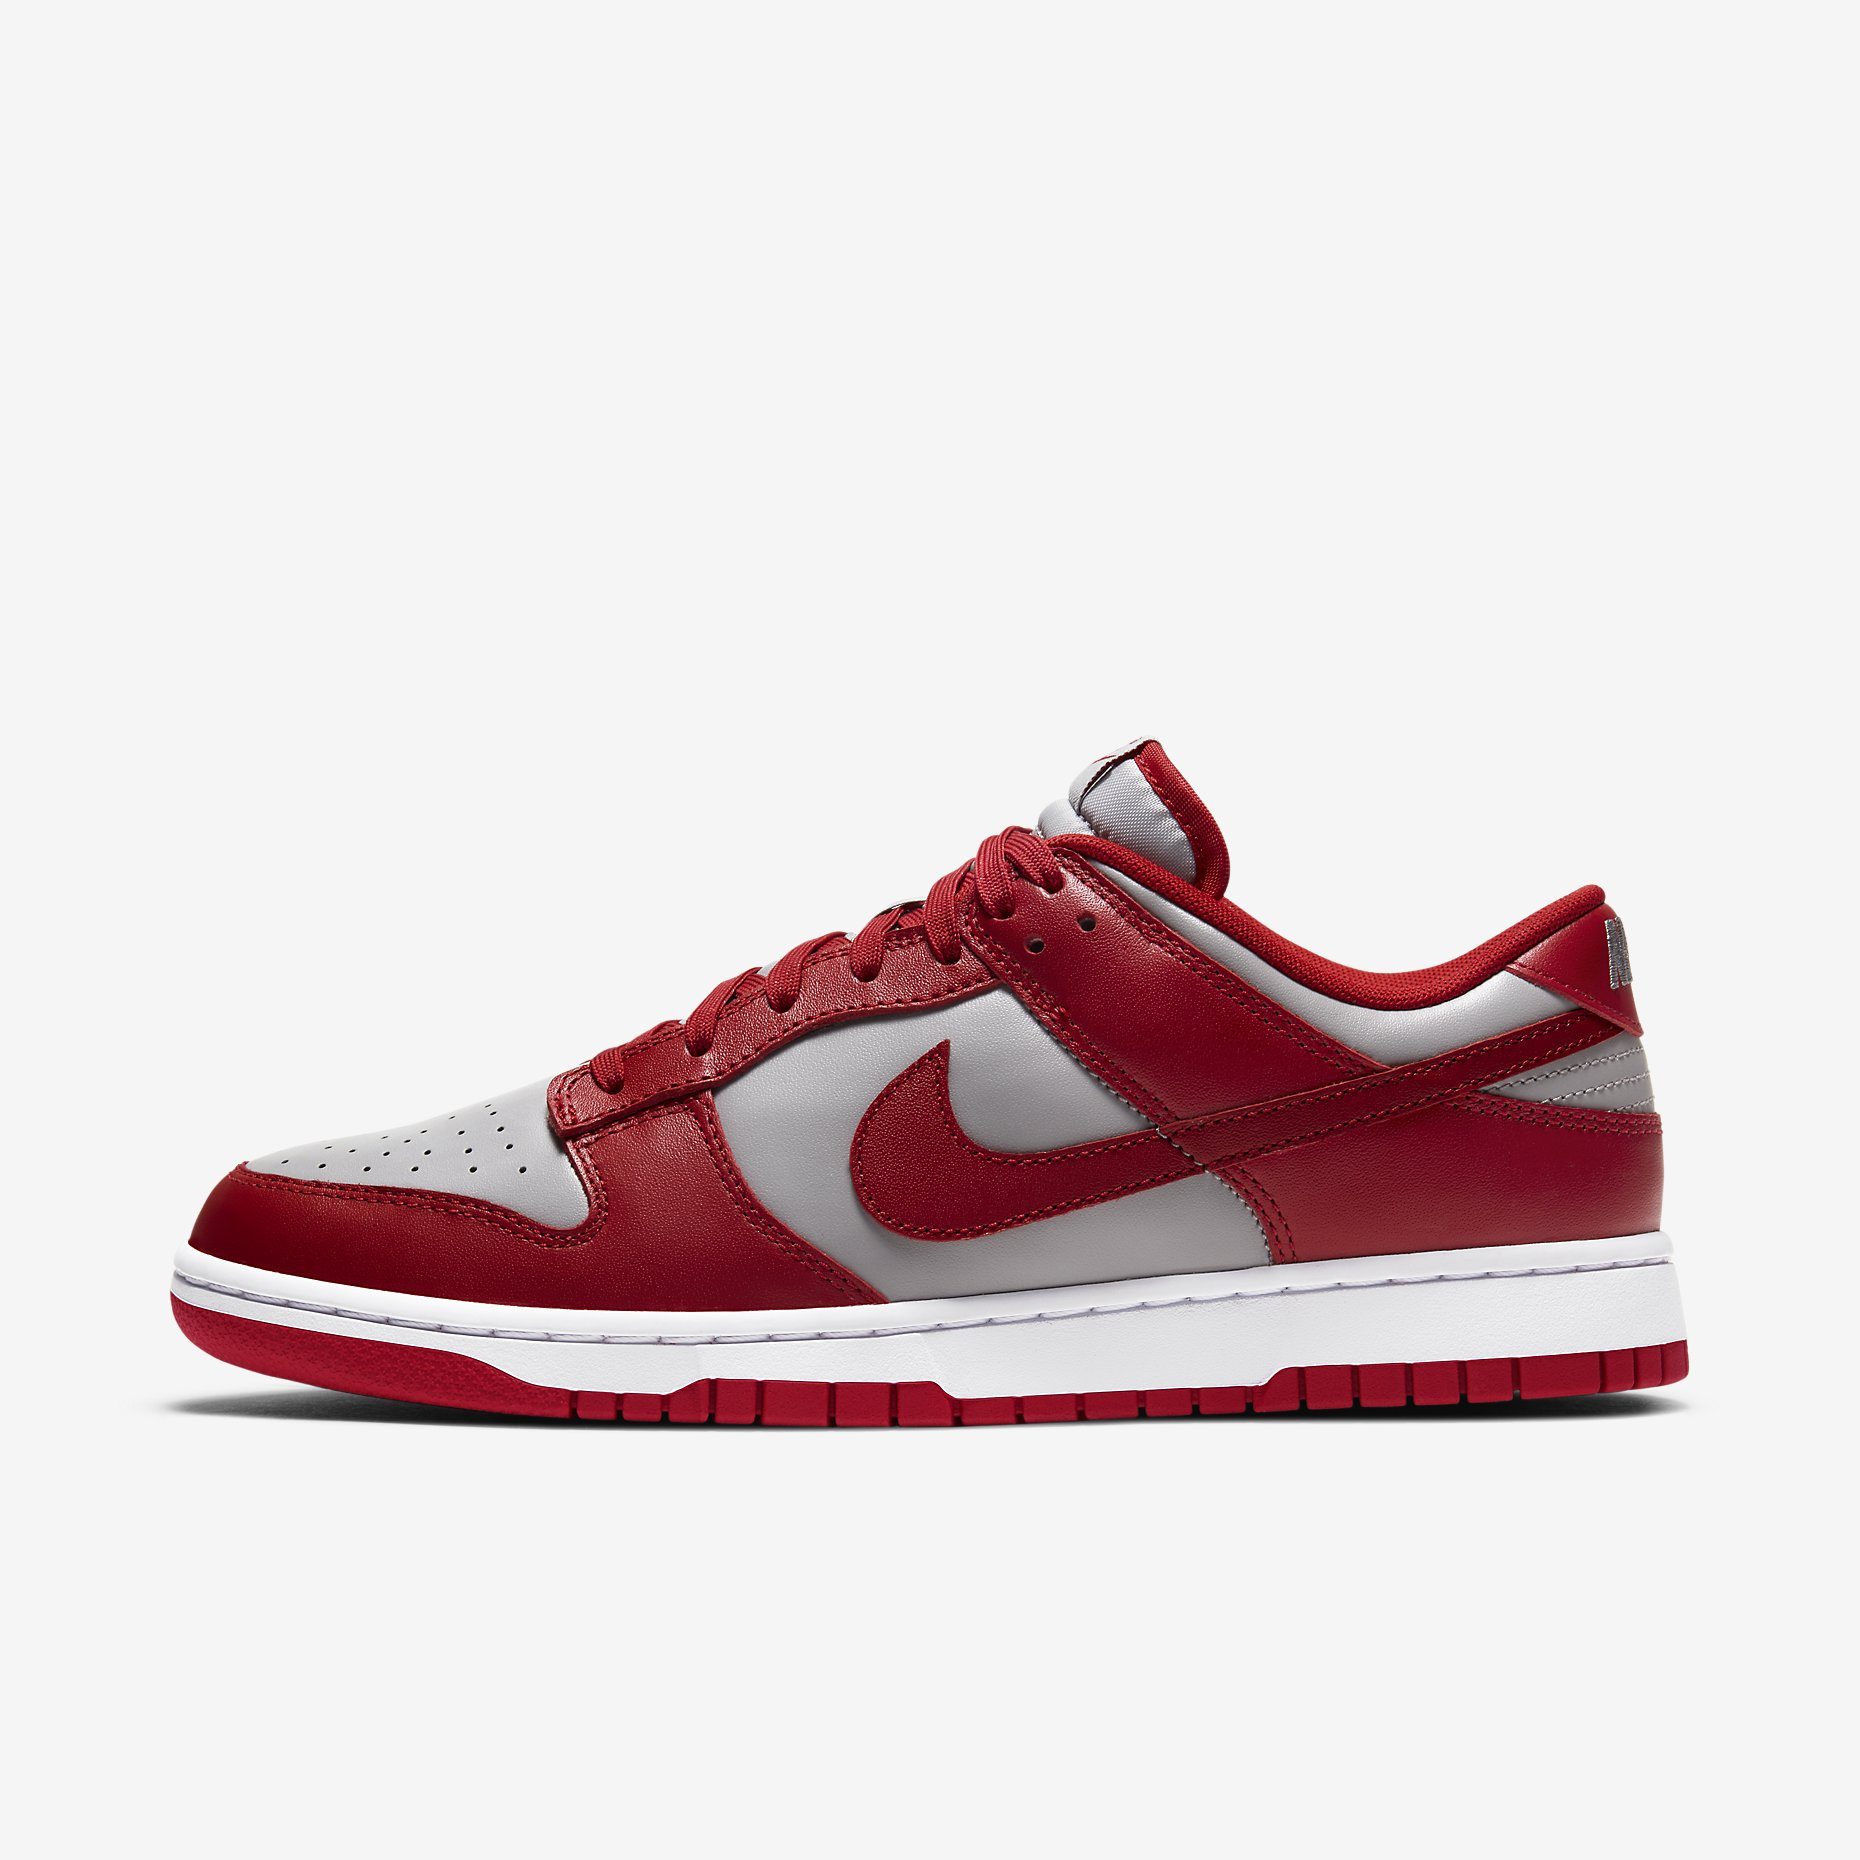 Nike Dunk Low 'Med Grey/Varsity Red'}